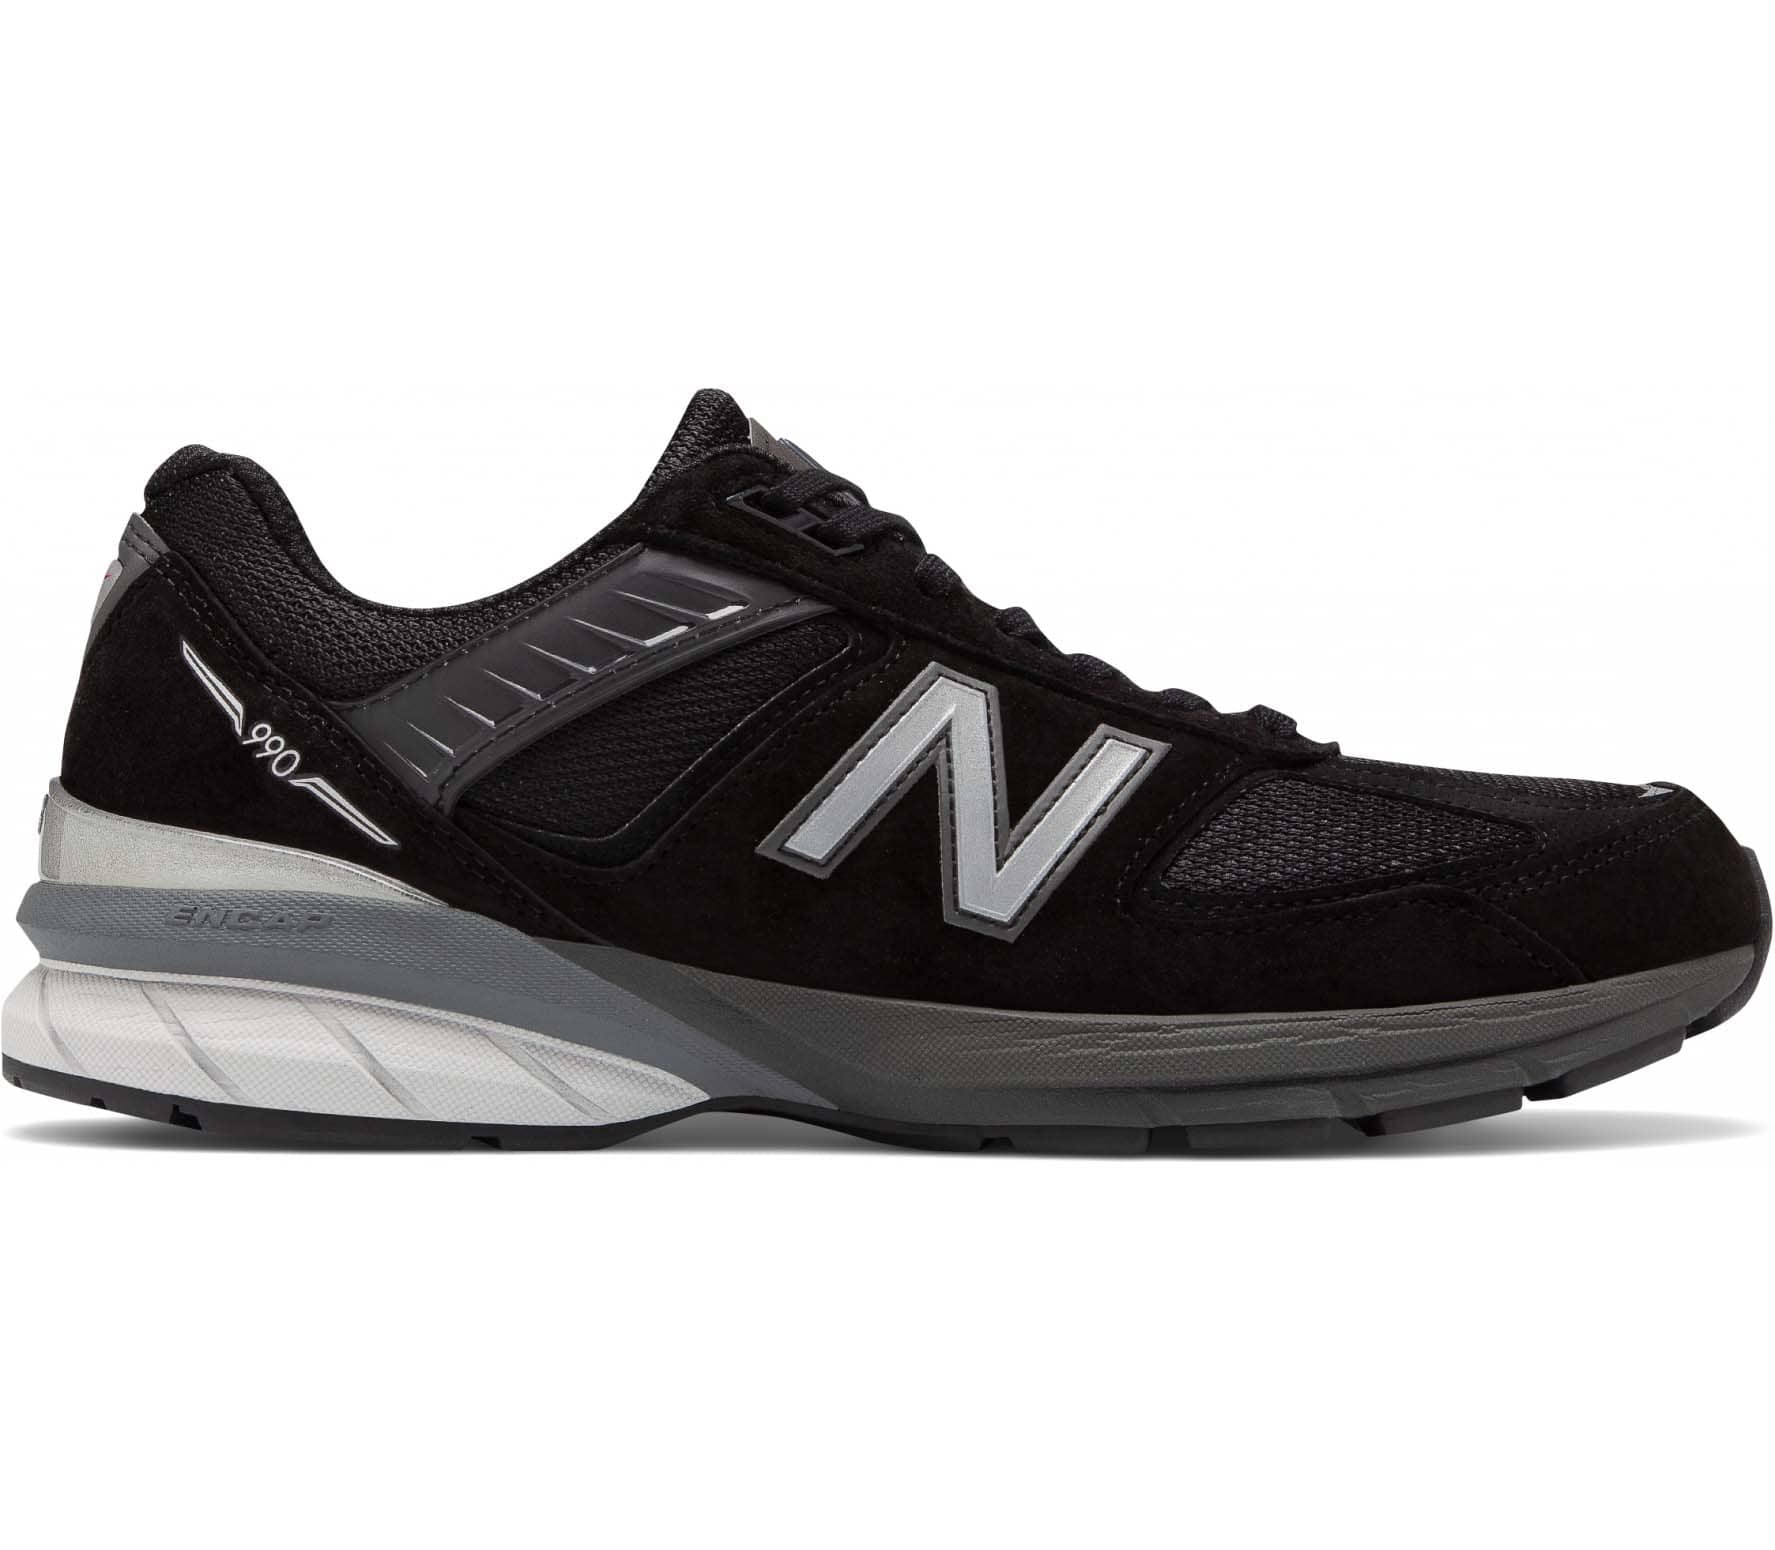 New Balance 990v5 Heren Sneakers zwart